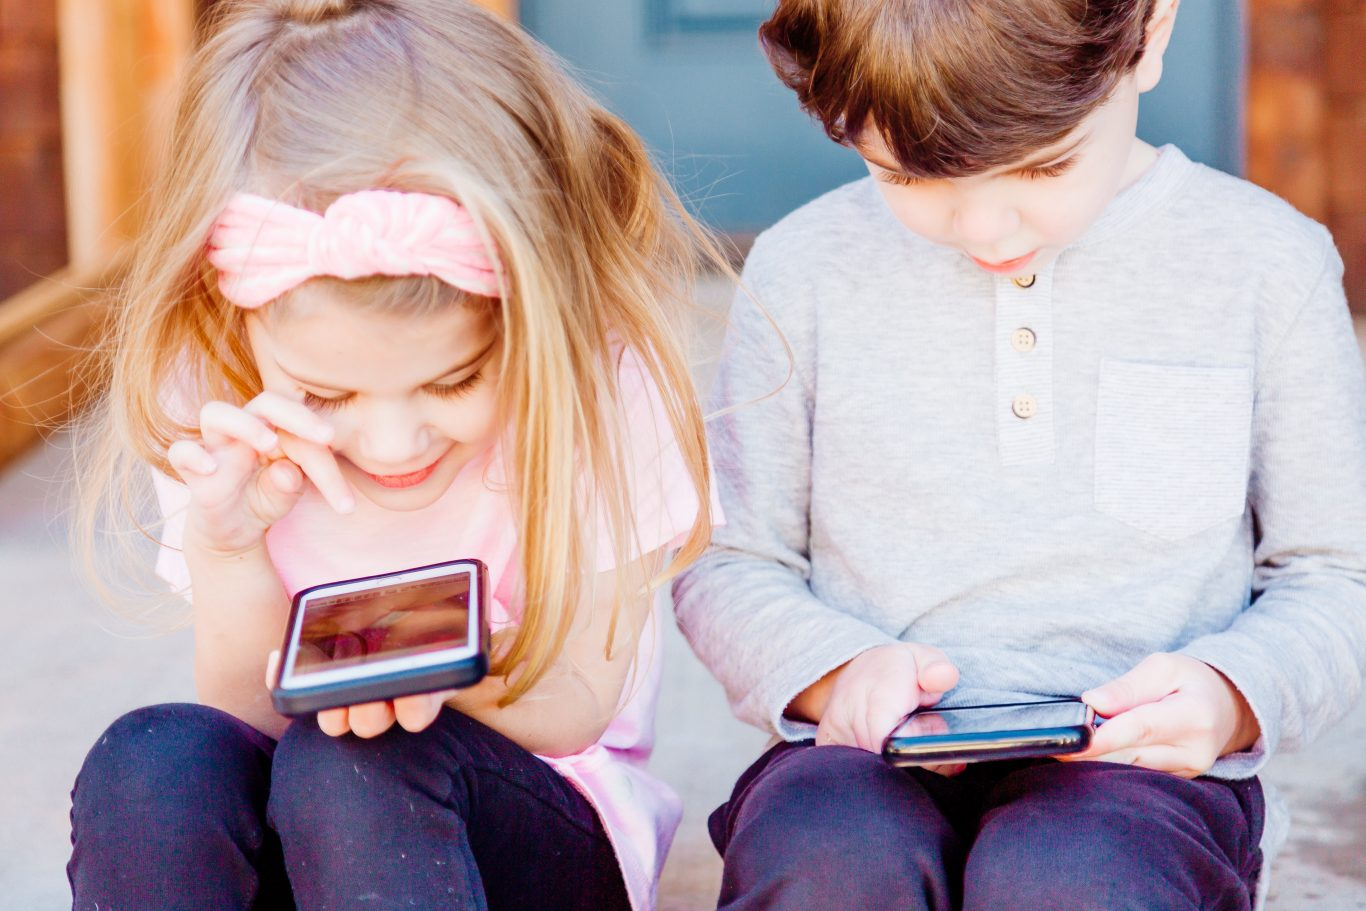 Children's Internet activity up by 200% in South Africa